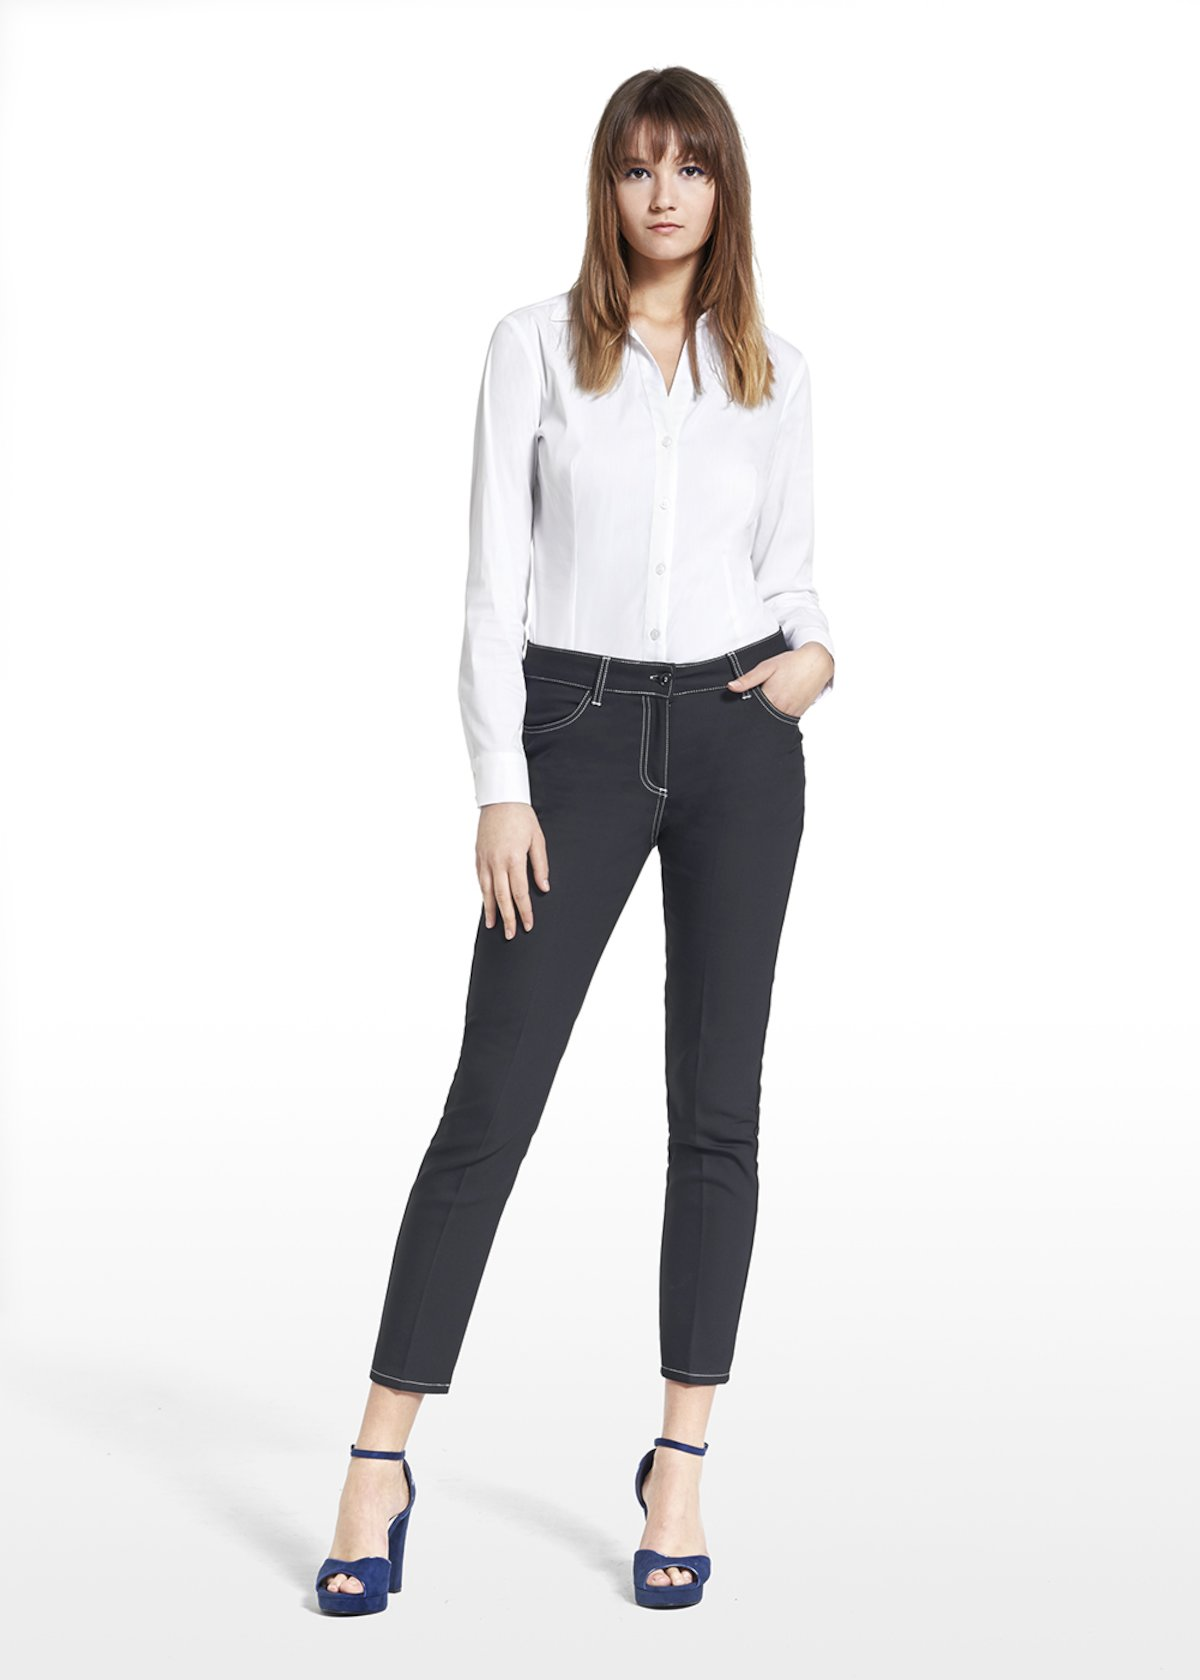 Poplin long-sleeved blouse Crizia - White - Woman - Category image